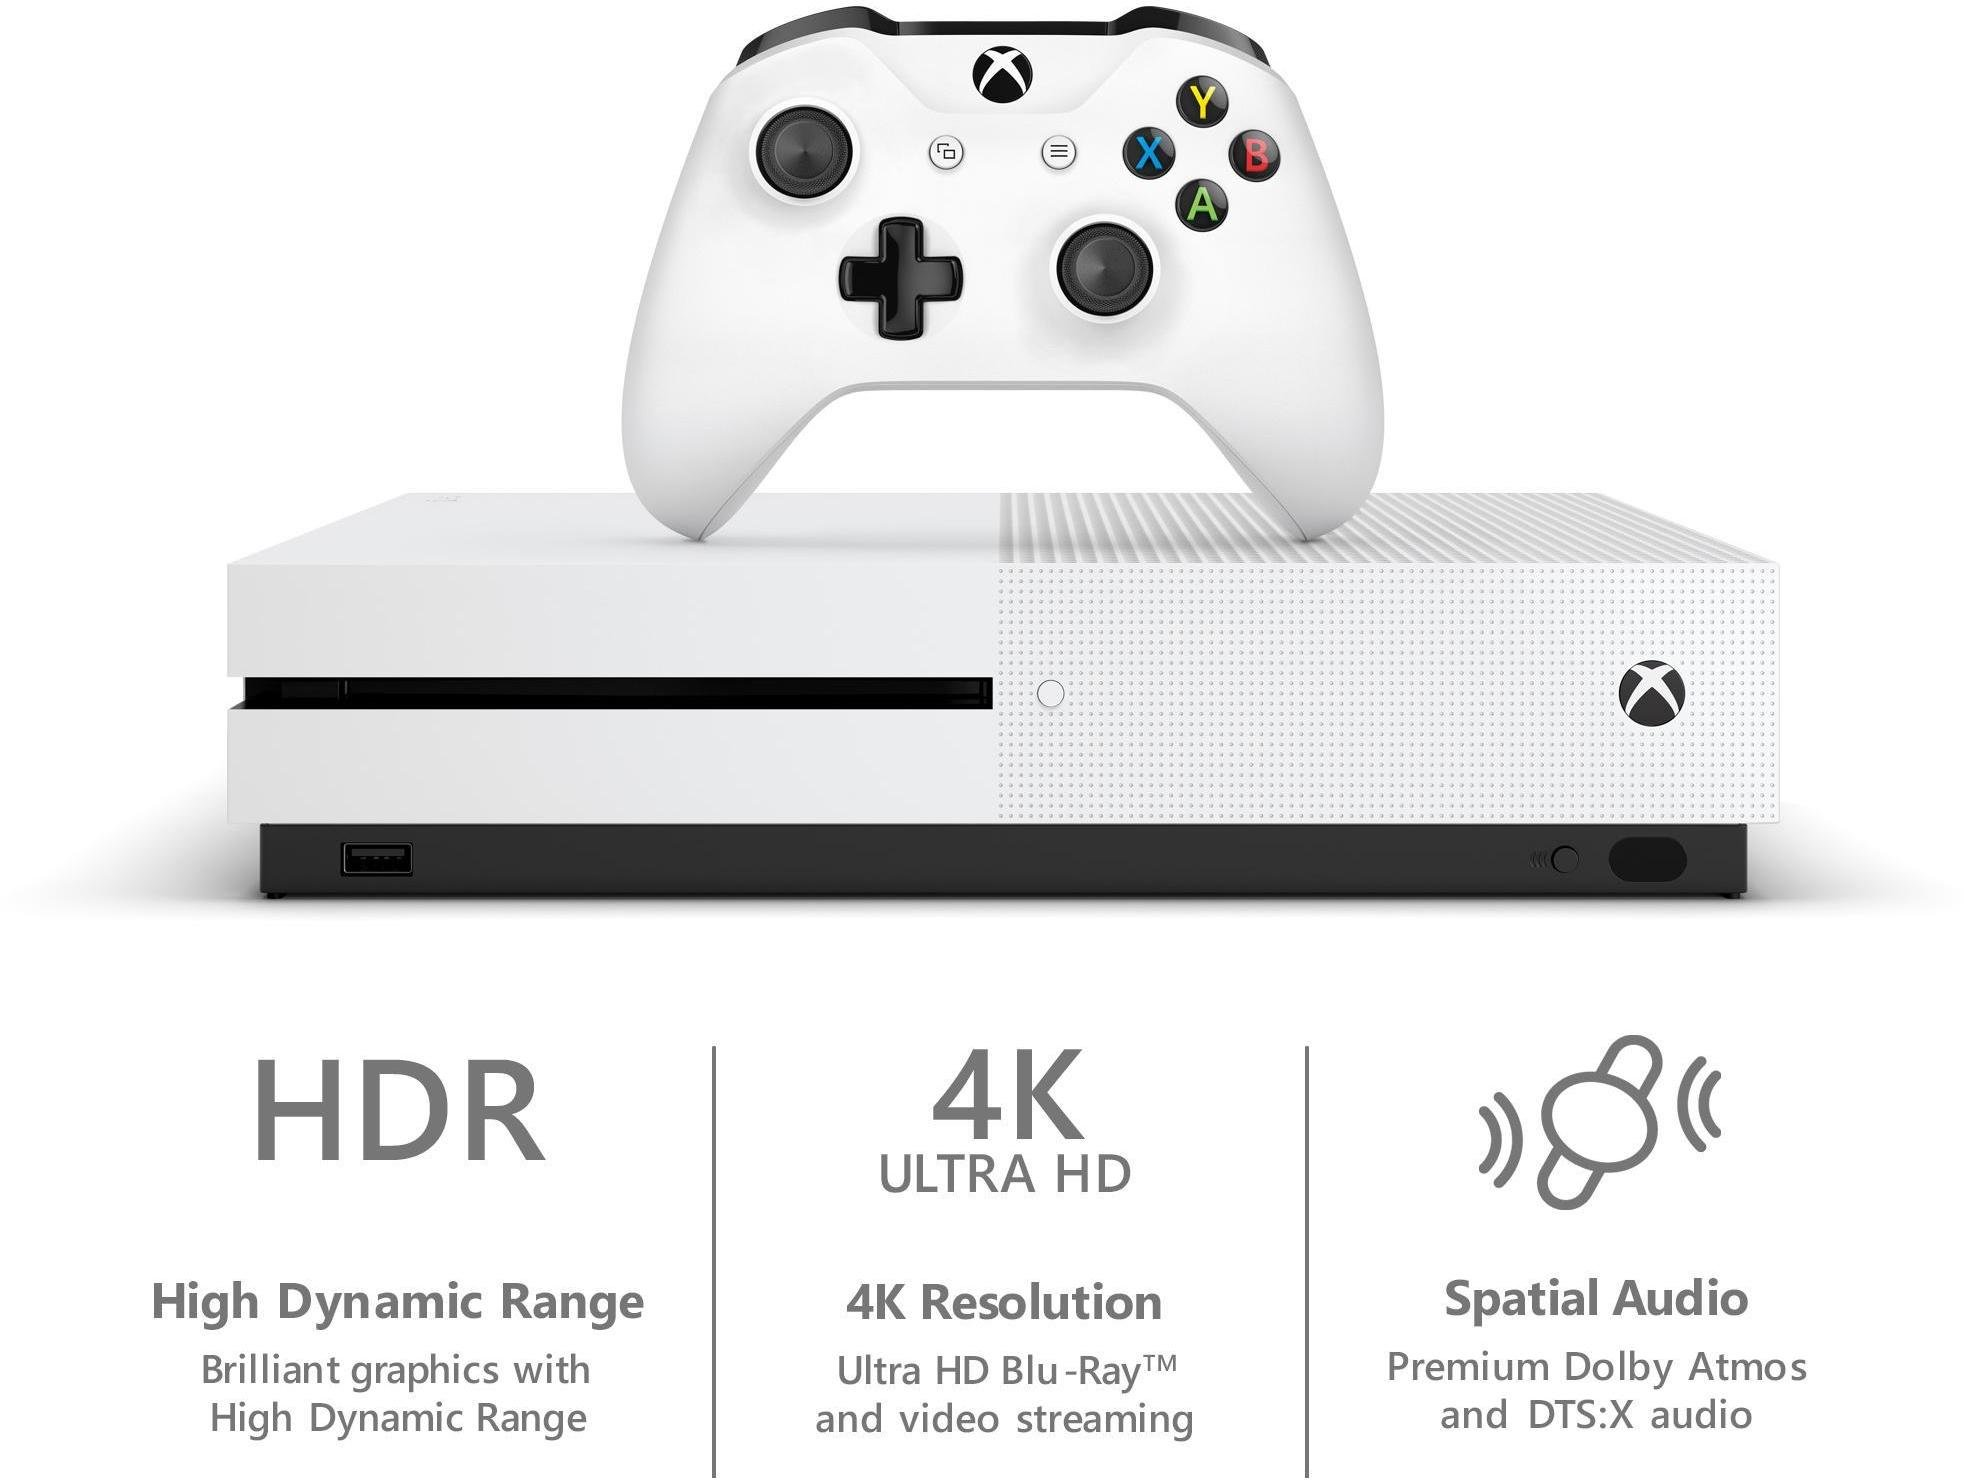 Xbox One S features